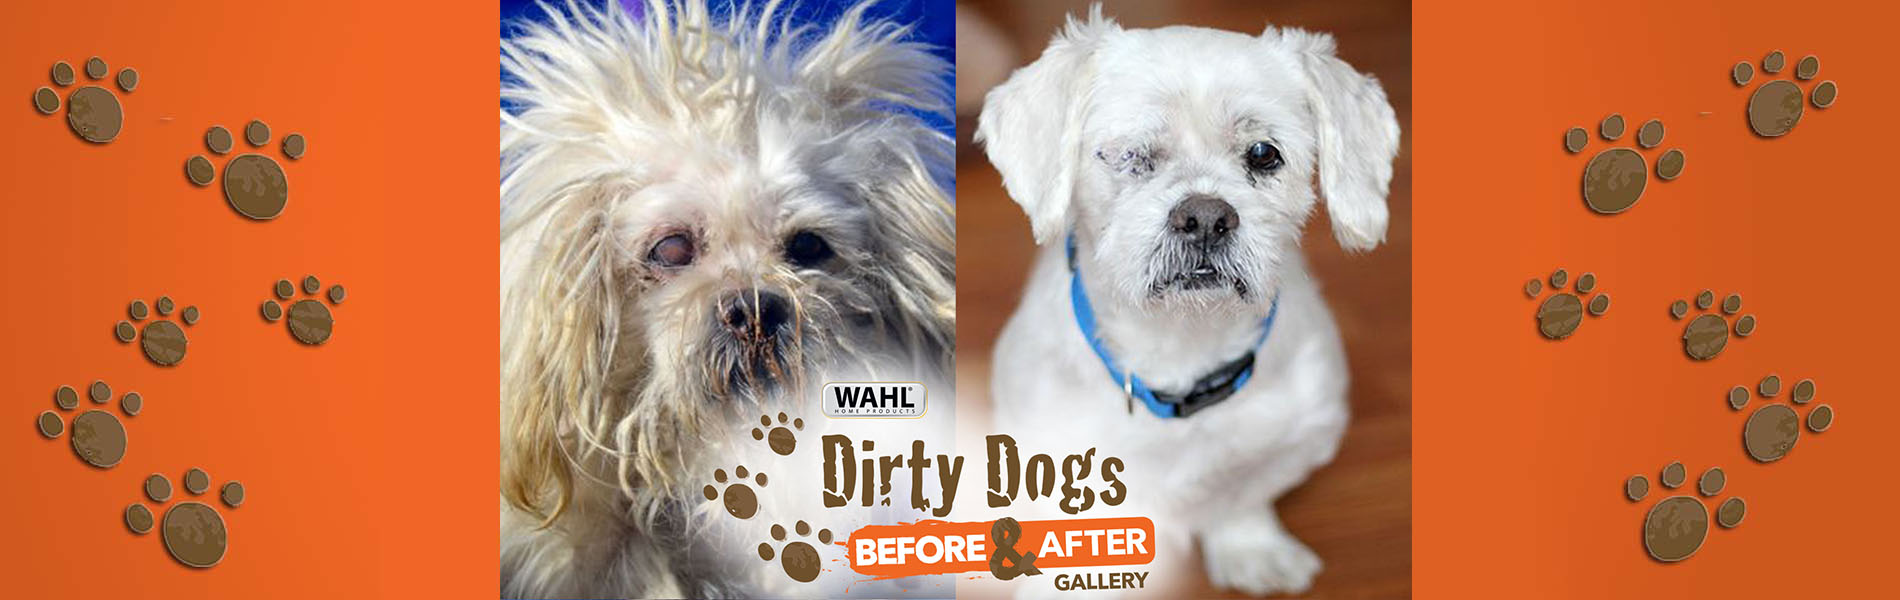 A before and after shot of a small dog. The left side shows a very hairy disheveled dog and the right side shows a well-groomed dog.